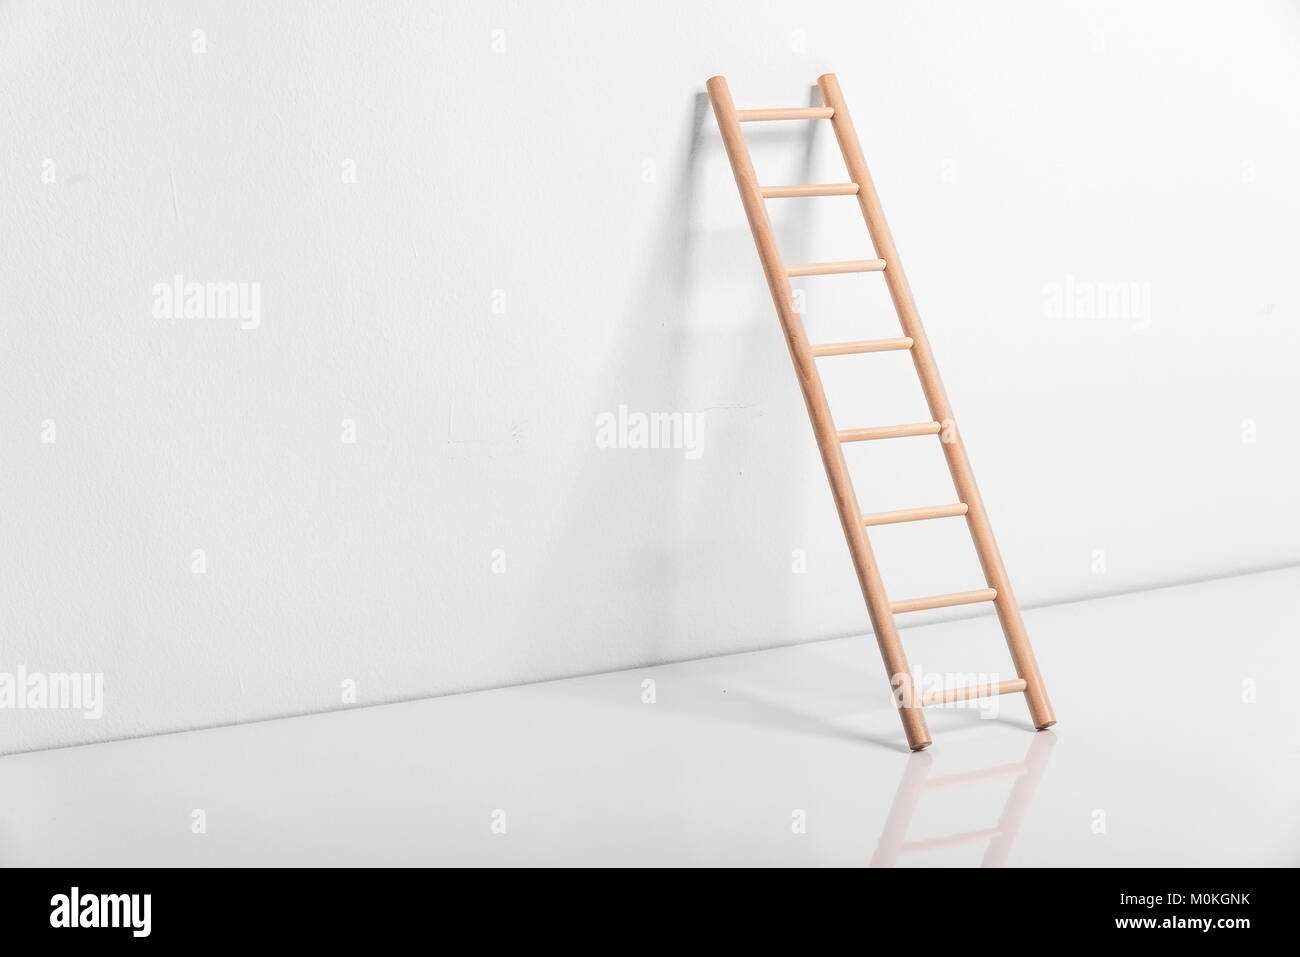 Tapete Gemauerte Wand Wooden Ladder Against Wall Stockfotos And Wooden Ladder